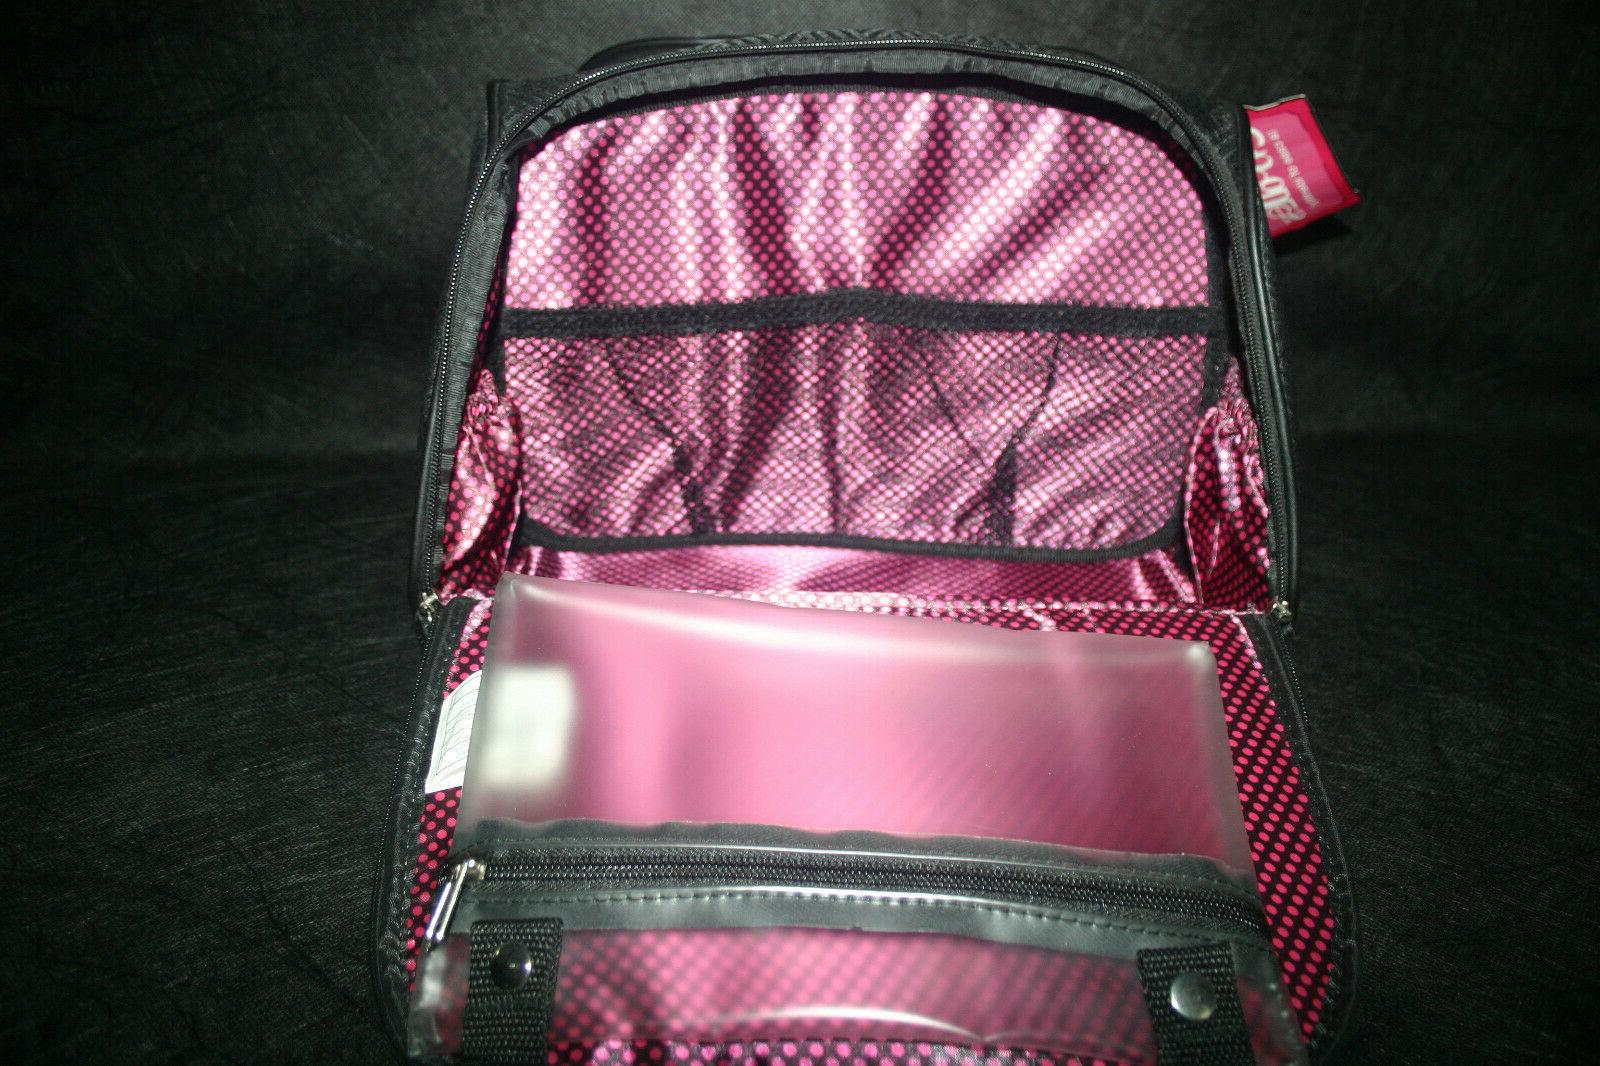 CABOODLES FEMME FATALE AOTE BLACK SOFT FABRIC COSMETIC BAG NEW